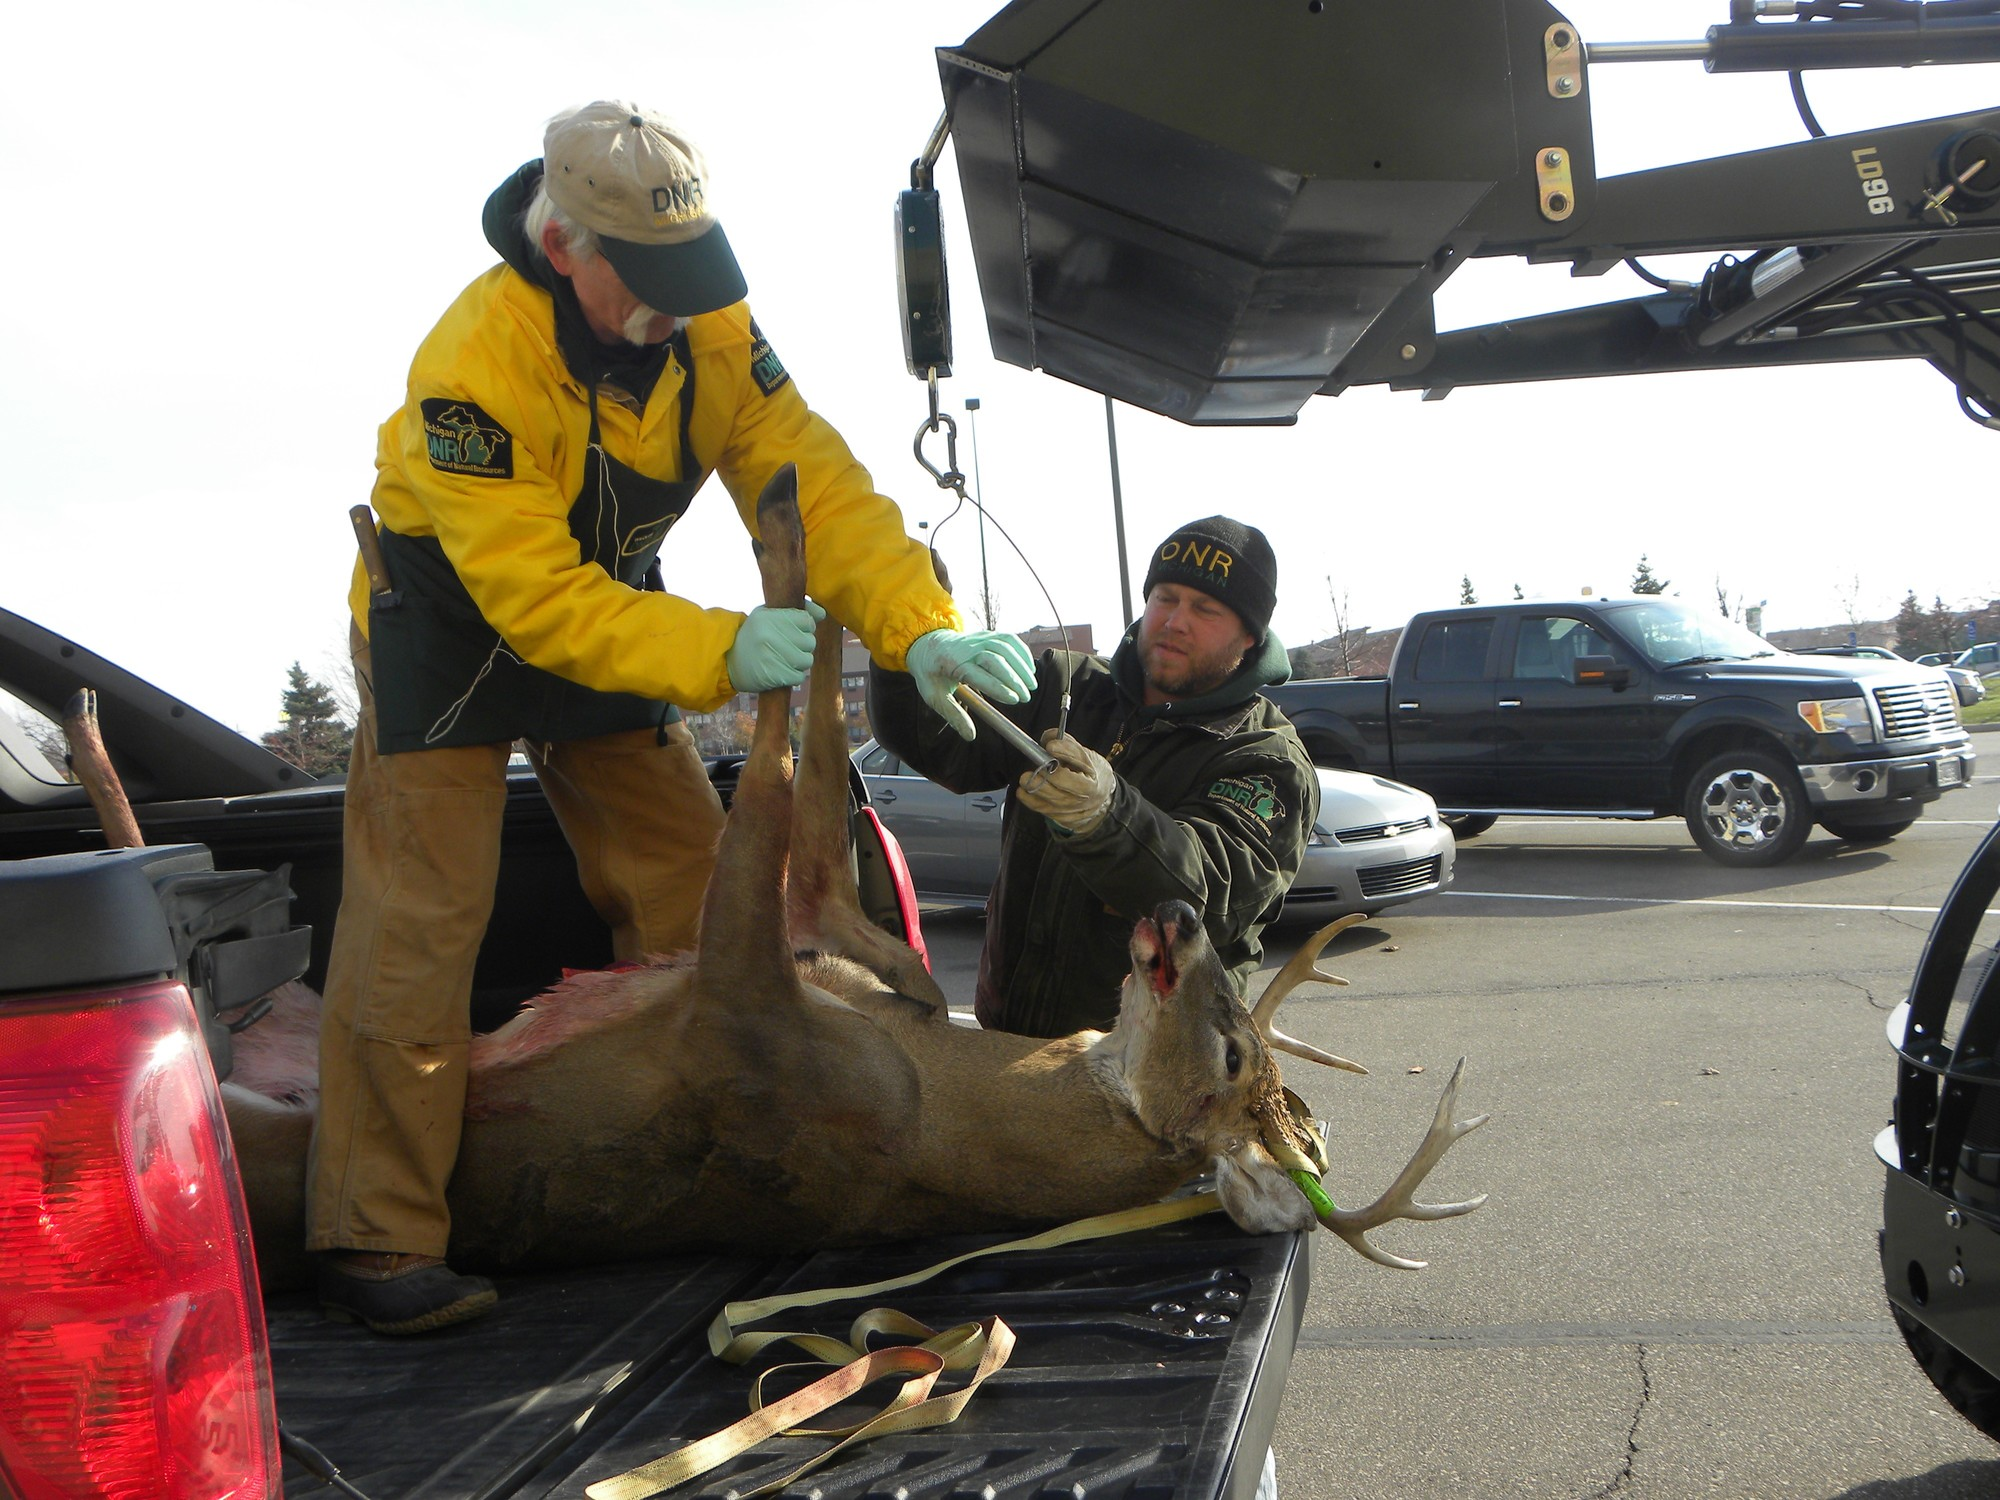 Tom and Zach Cooley working to get a white-tailed deer out of a truck bed.